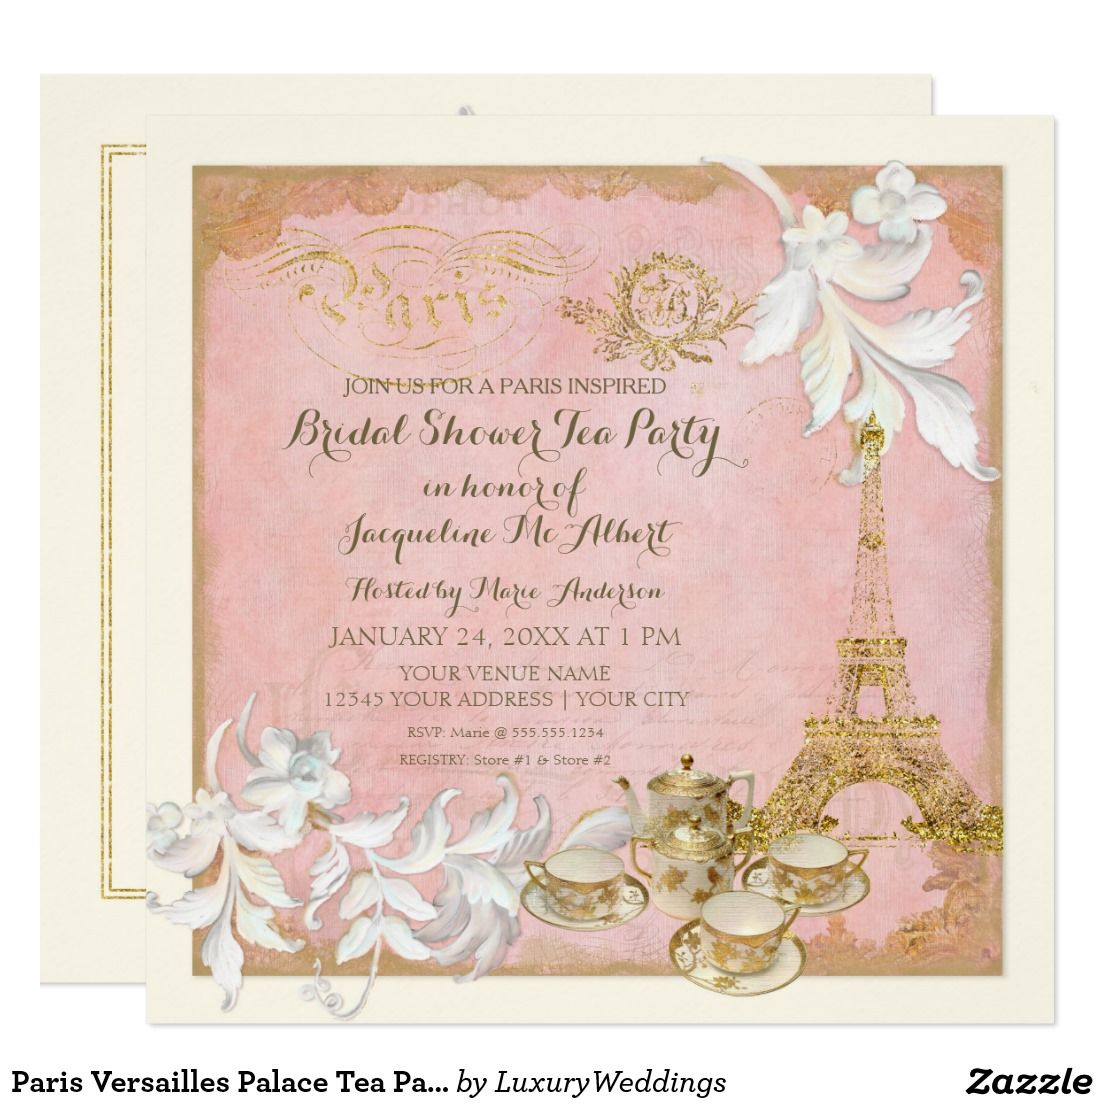 Paris Versailles Palace Tea Party Bridal Shower Card Tea Party